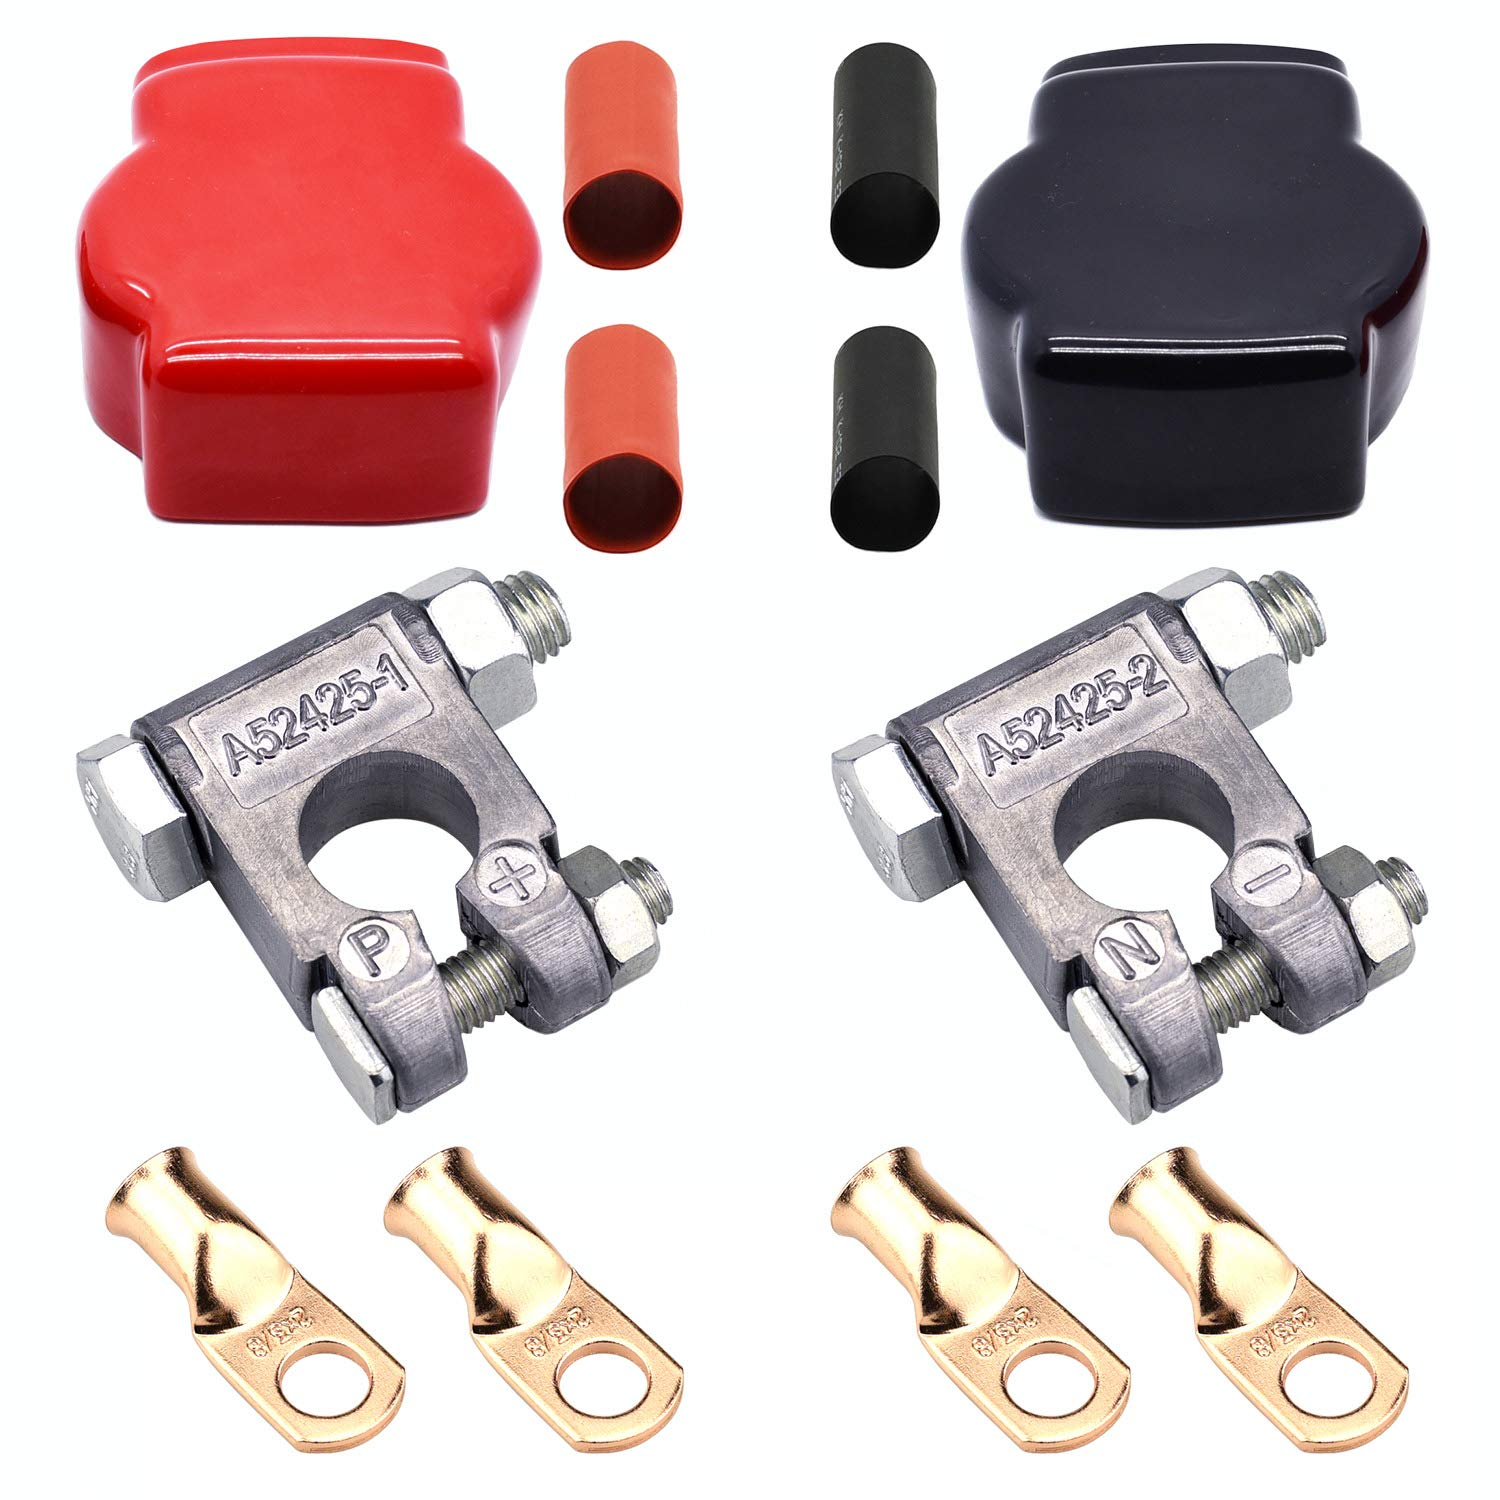 Cllena Military Style Battery Terminals}